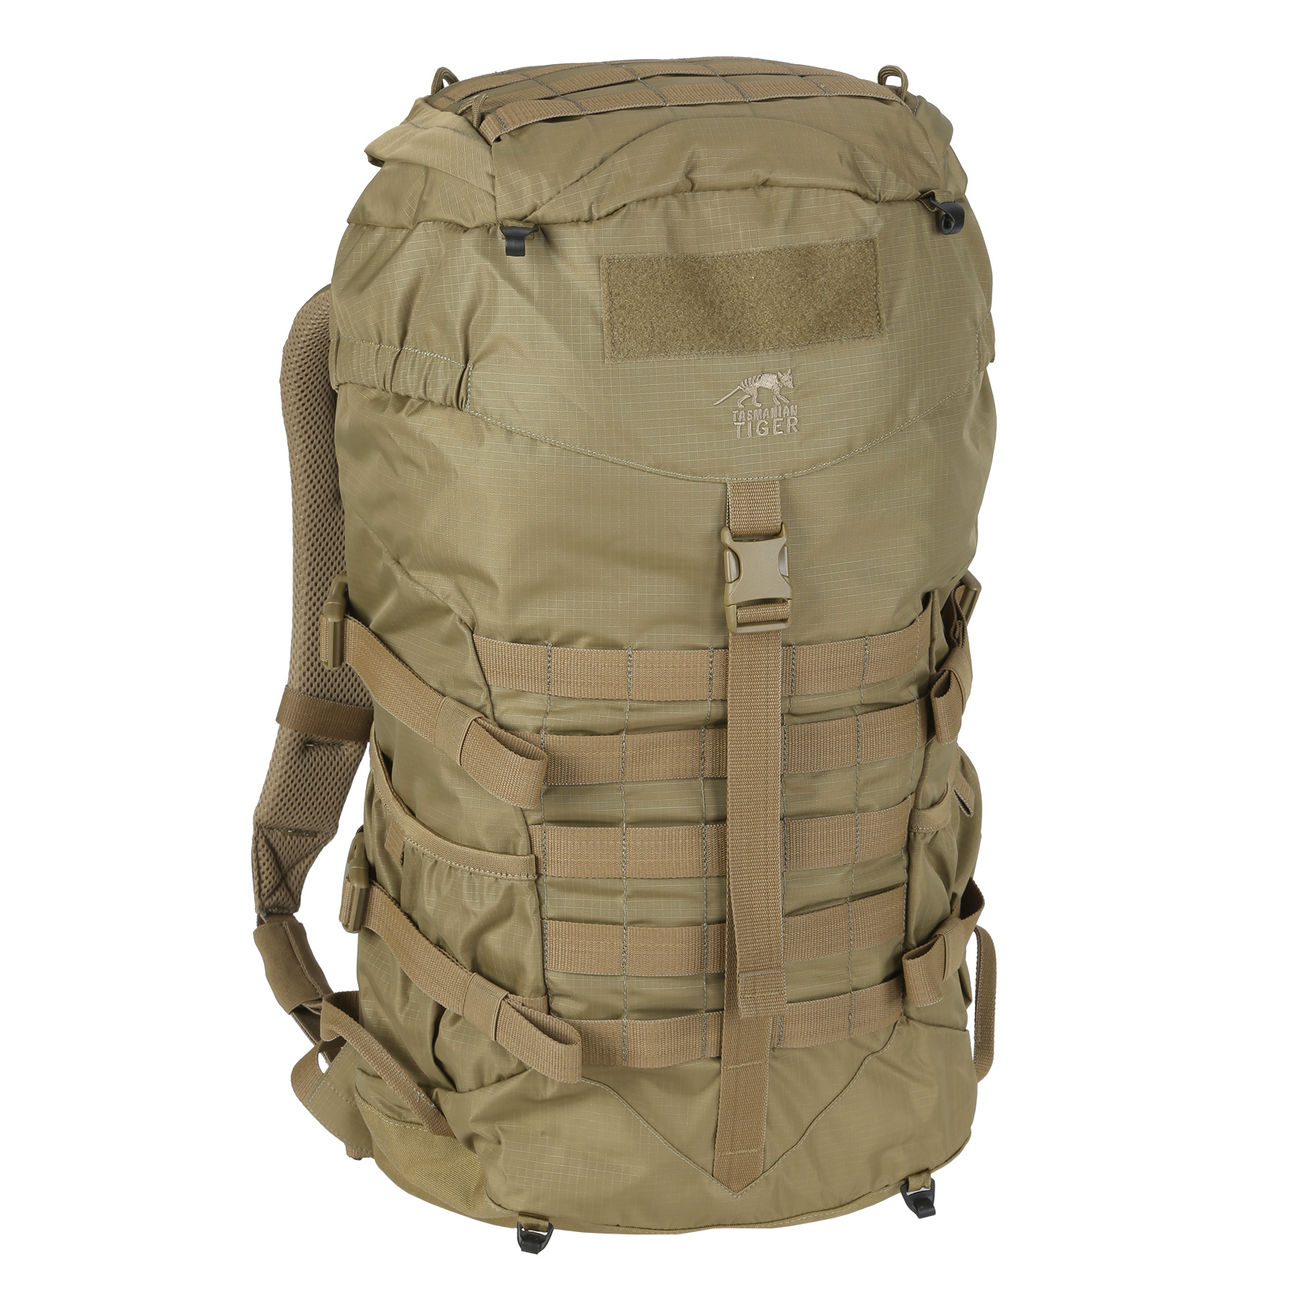 TT Rucksack Trooper Light Pack 35 khaki 0